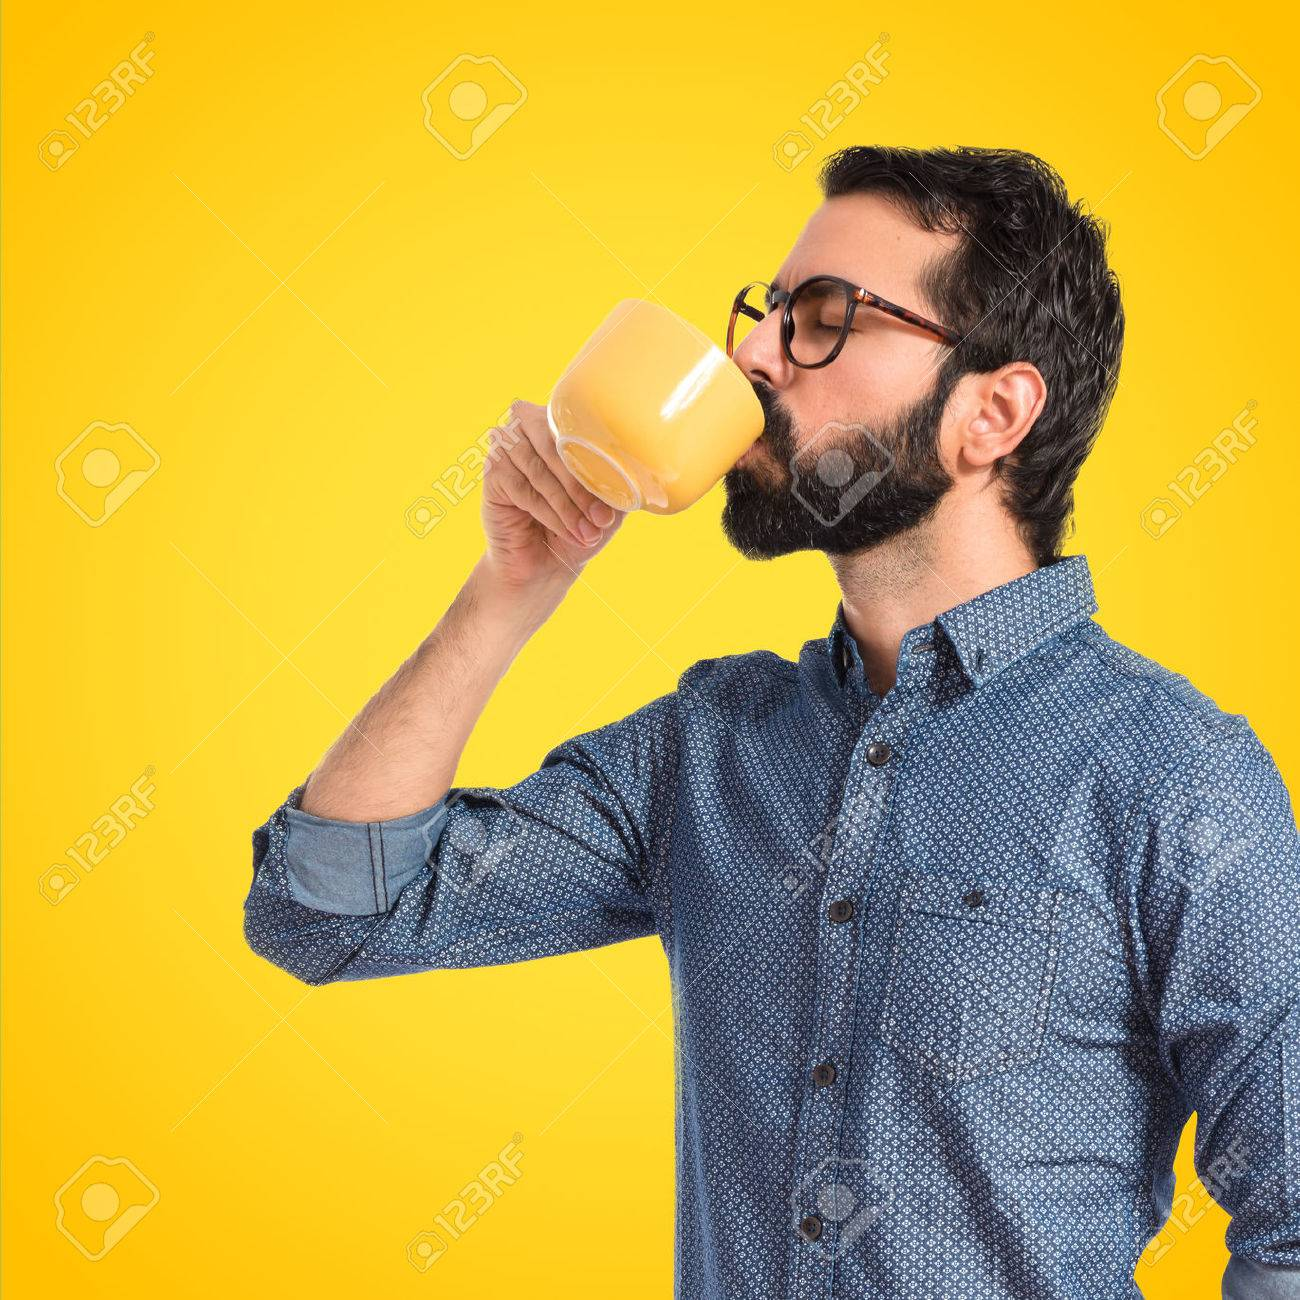 Young hipster man drinking coffee over white background Stock Photo - 40989425